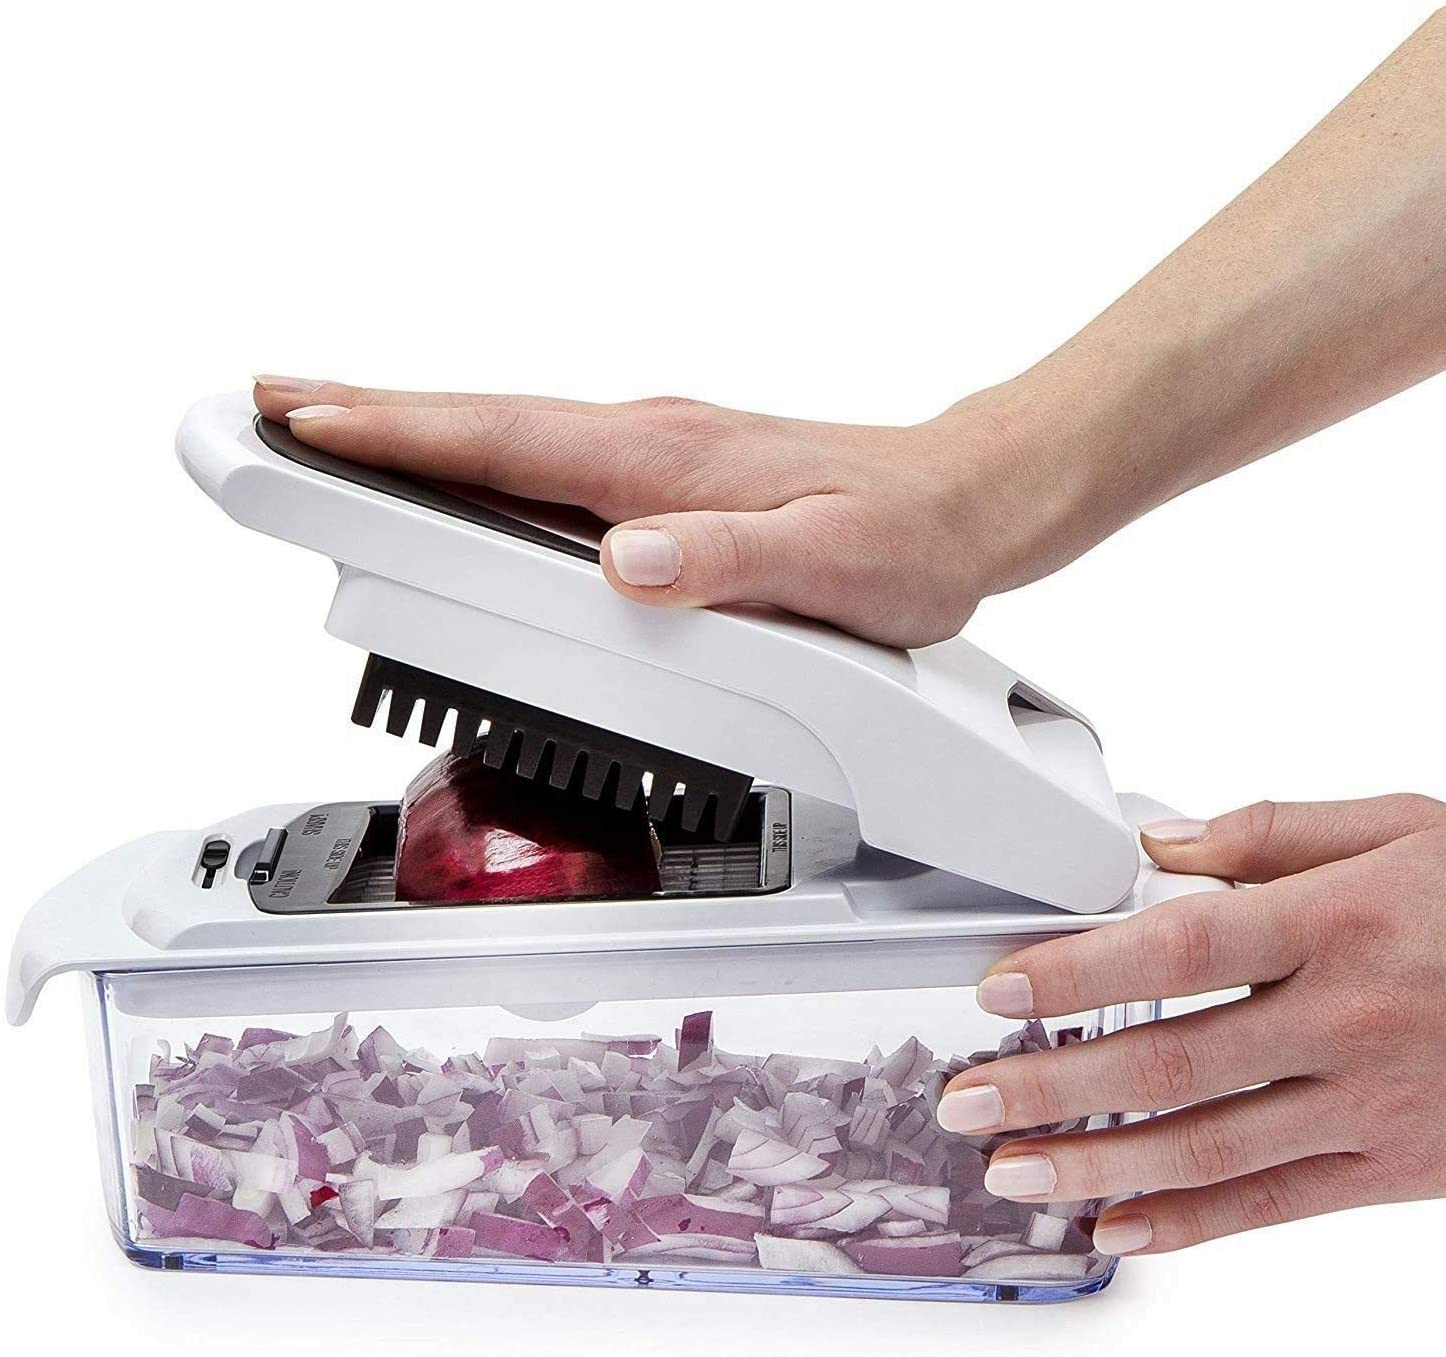 Sharper Image Professional 7-in-1 Vegetable Chopper and Spiralizer with Built-In Storage Container - Chop, Cut, Spiralize ,and Store all Your Favorite Veggies! No More Tears